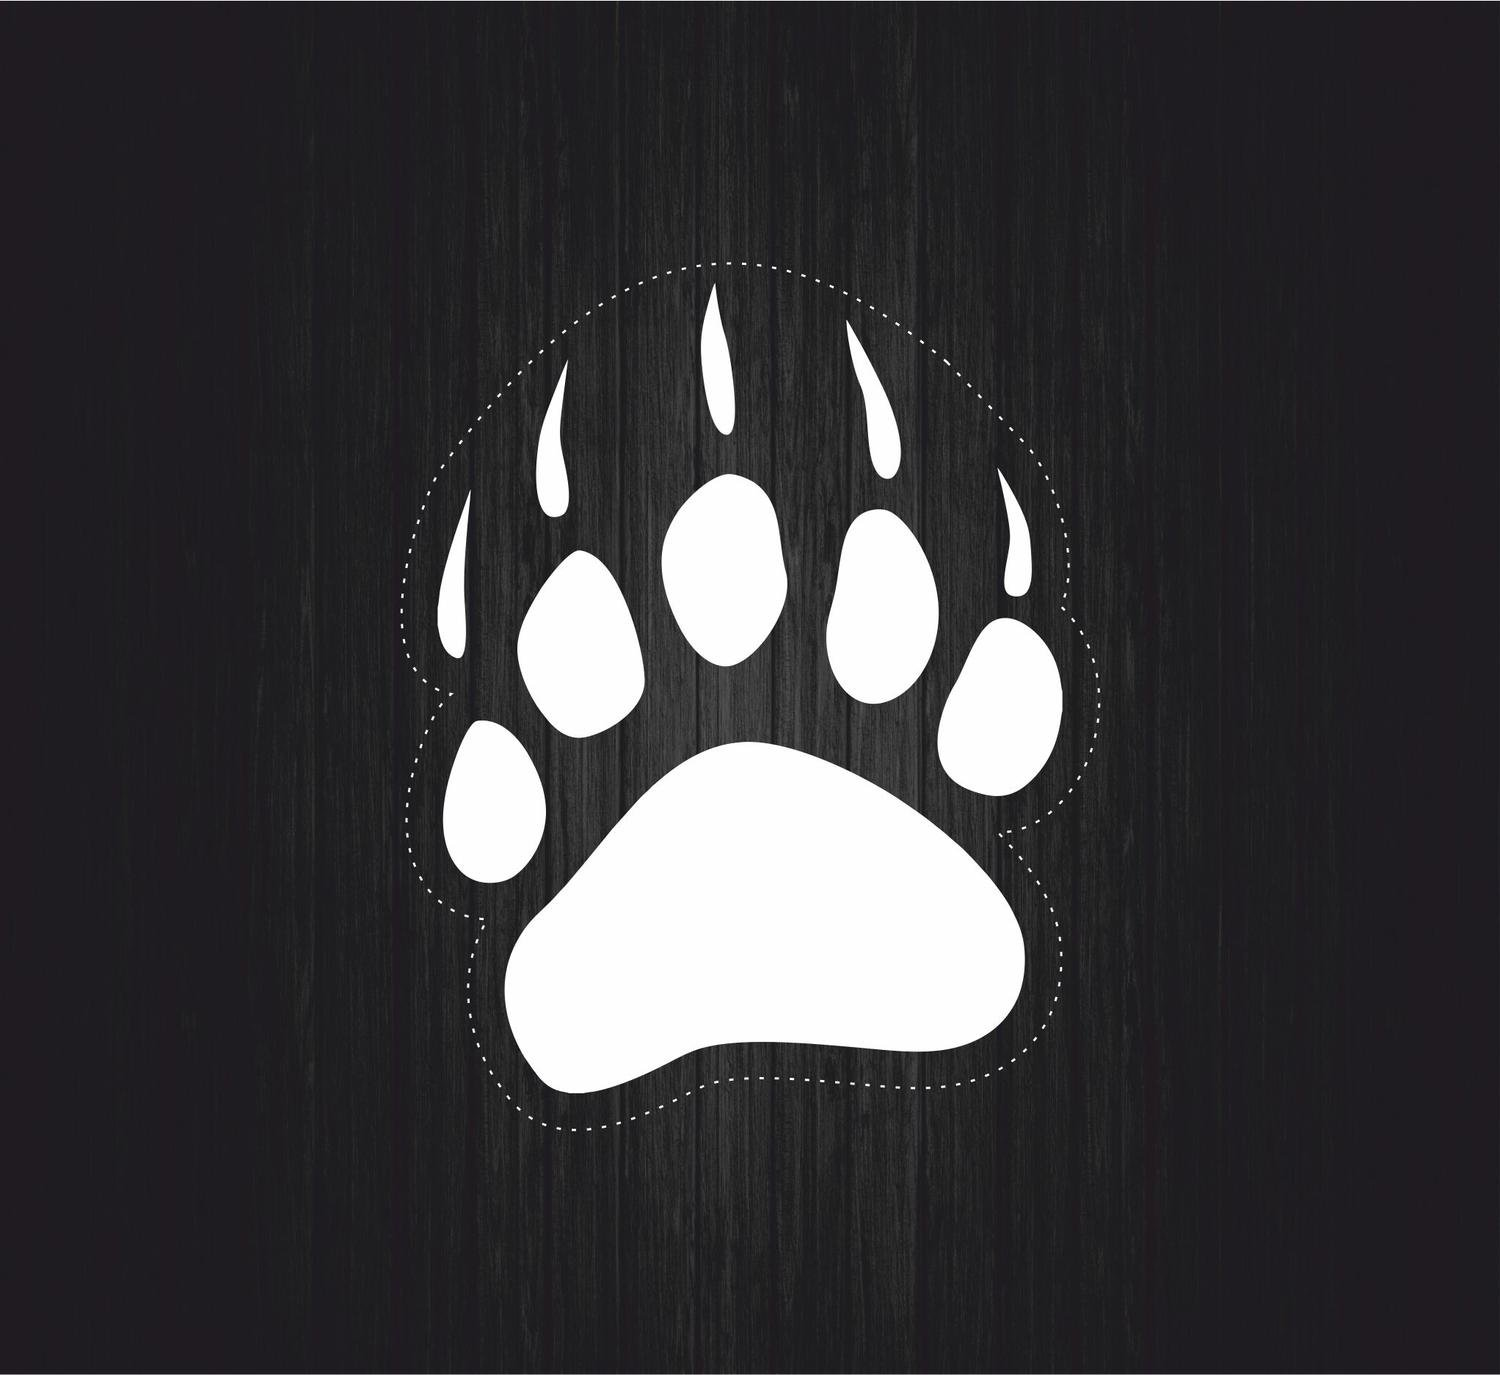 Akachafactory Autocollant Sticker Voiture Moto Tuning Patte Ours Panda Chien Chat r3